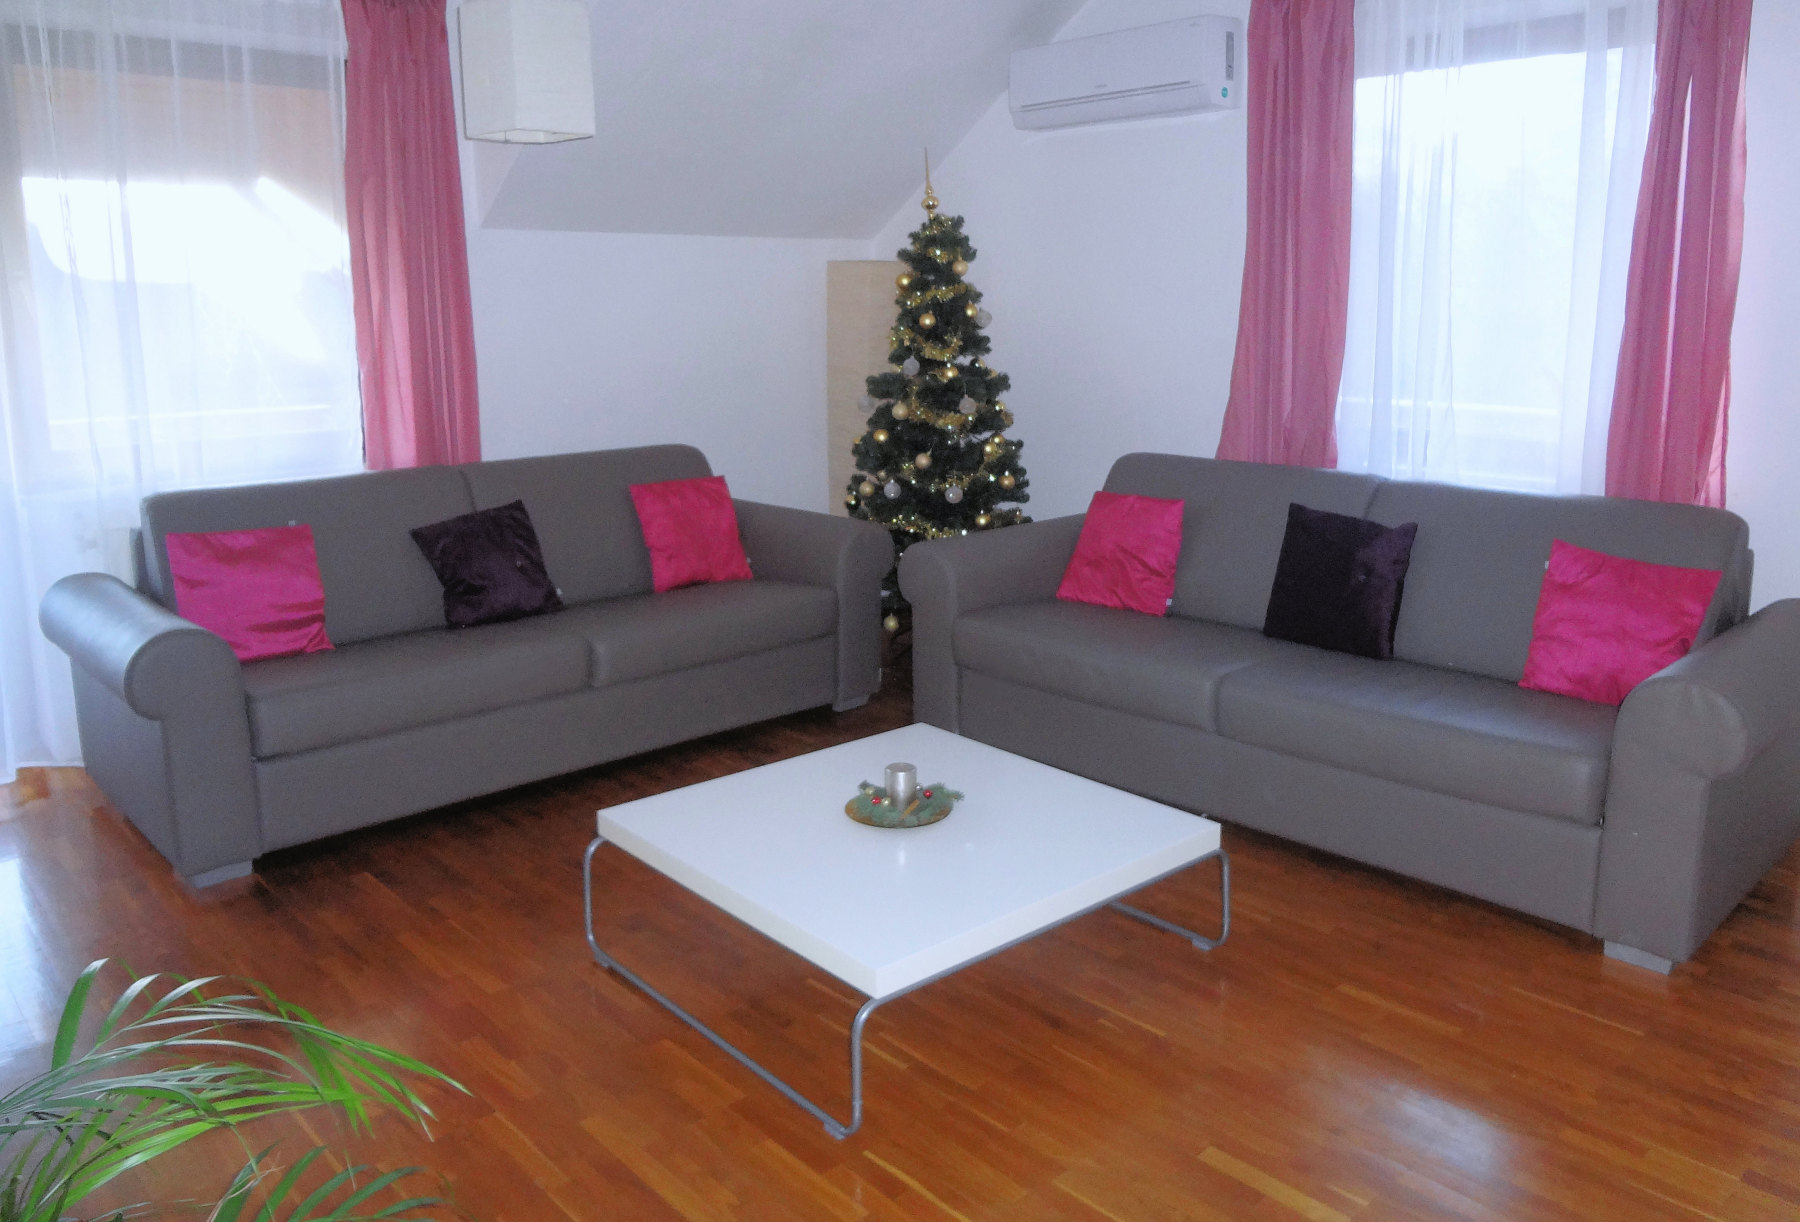 Living room of Apartments Fine Stay with a Christmas tree in the corner